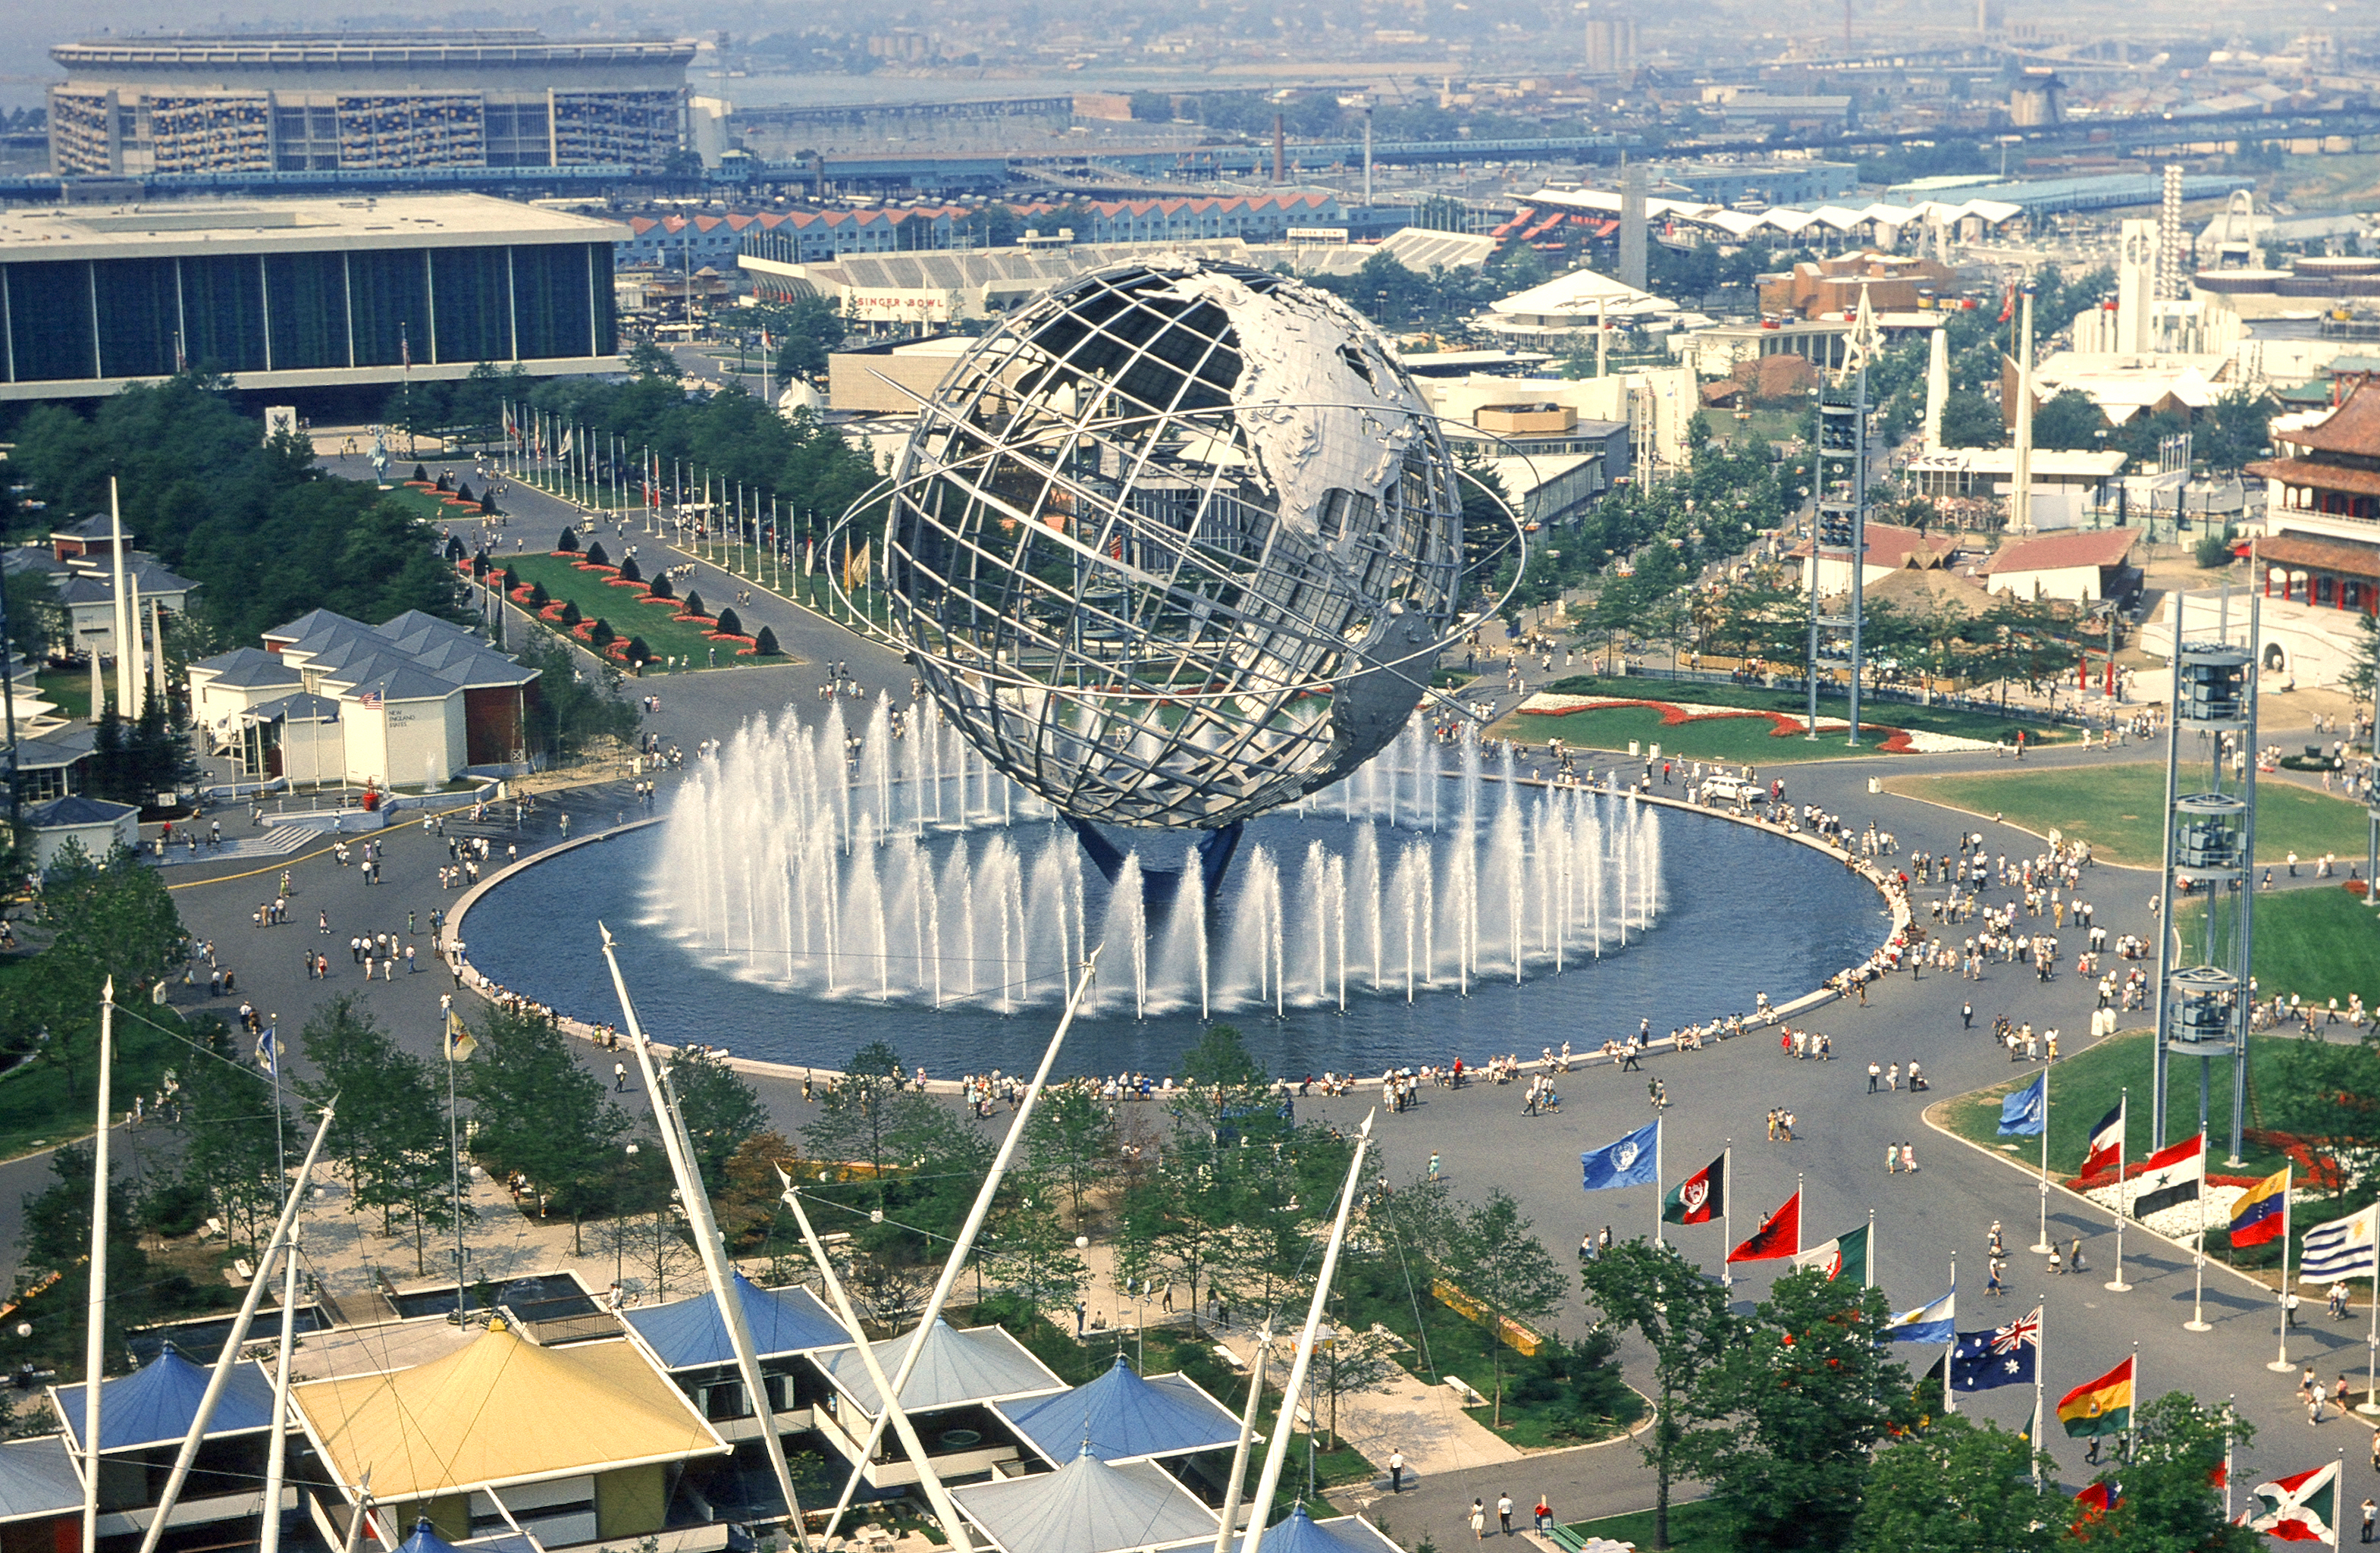 View from the observation towers of the New York State Pavilion; the Unisphere is in the center, Shea Stadium at far background left. Photo taken by Anthony Conti in August 1964.